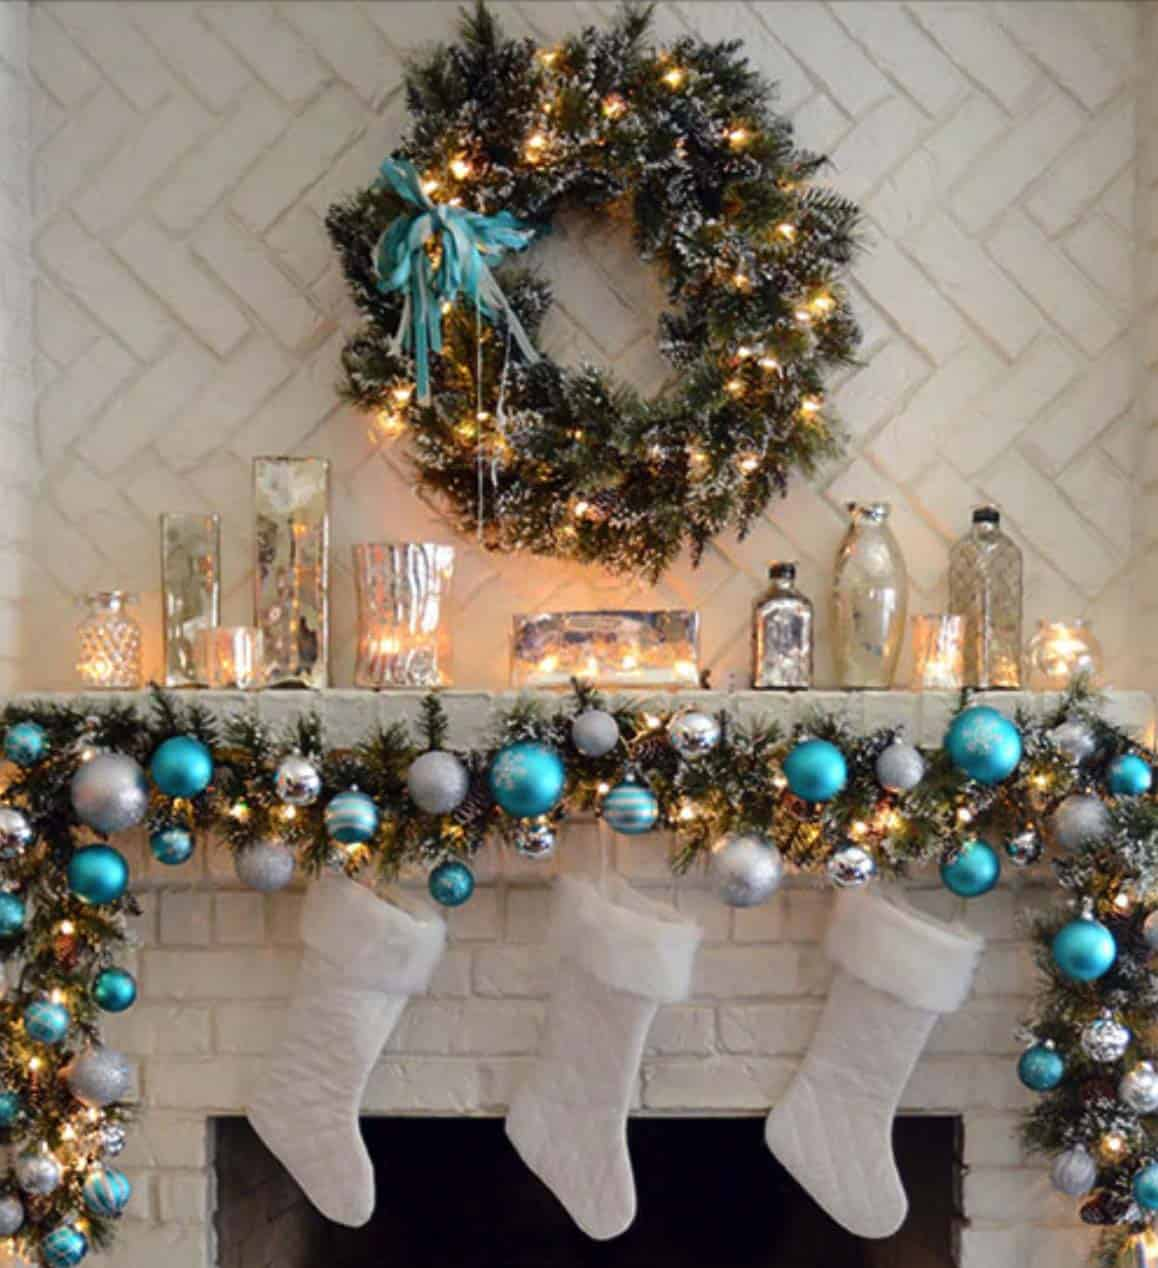 christmas mantel decorating ideas 51 1 kindesign - Christmas Mantel Decorating Ideas